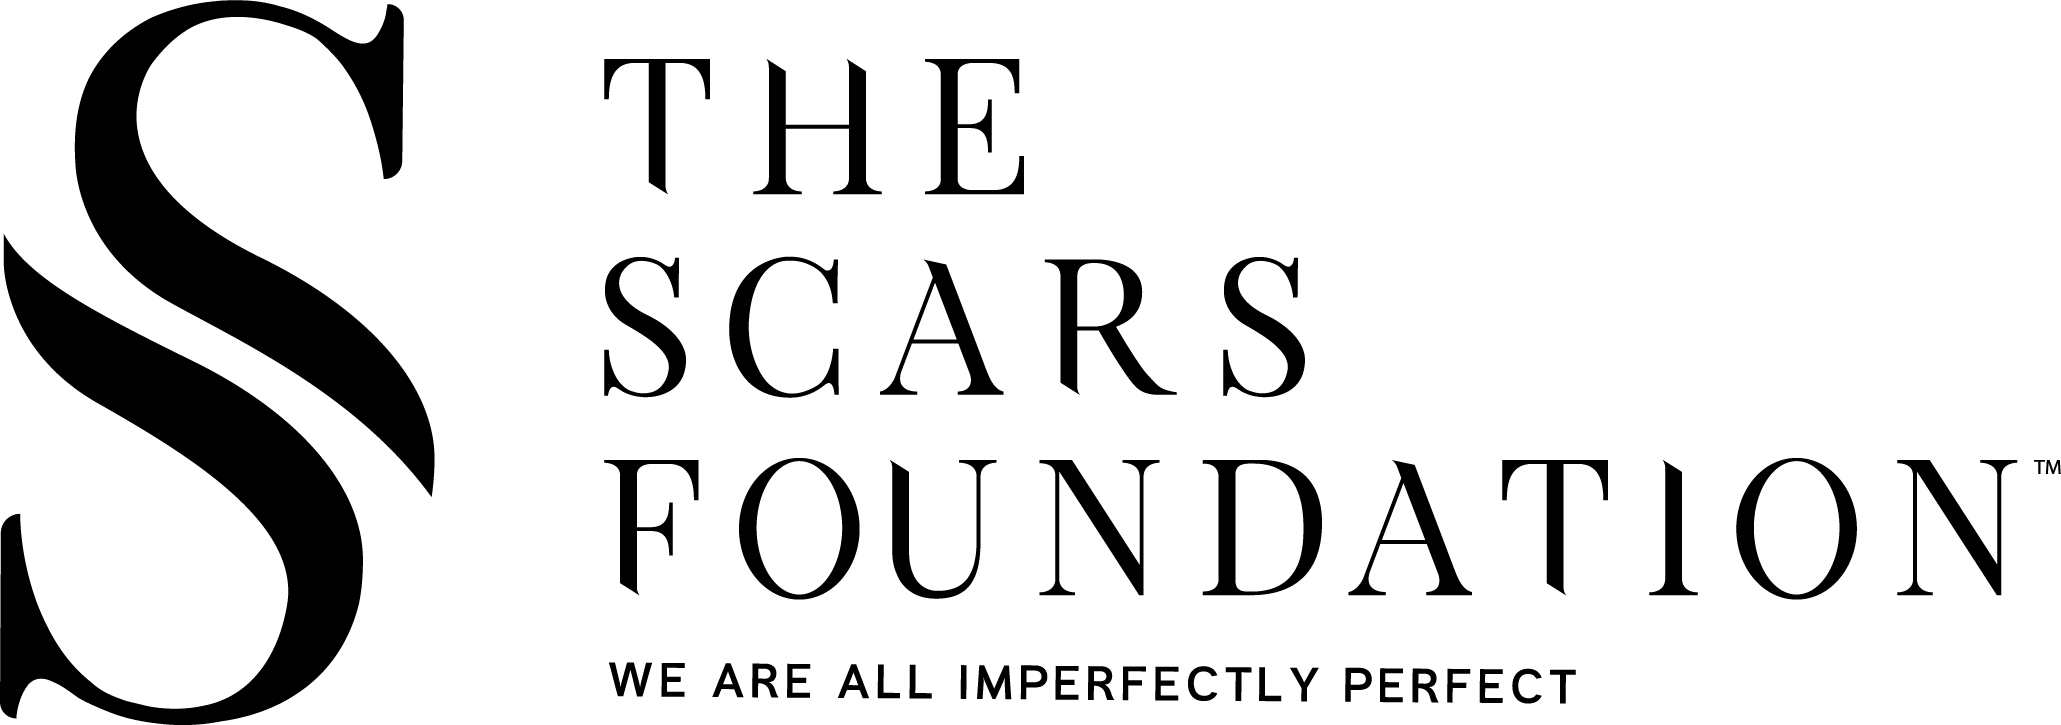 Scars Foundation Logo-Black.jpg